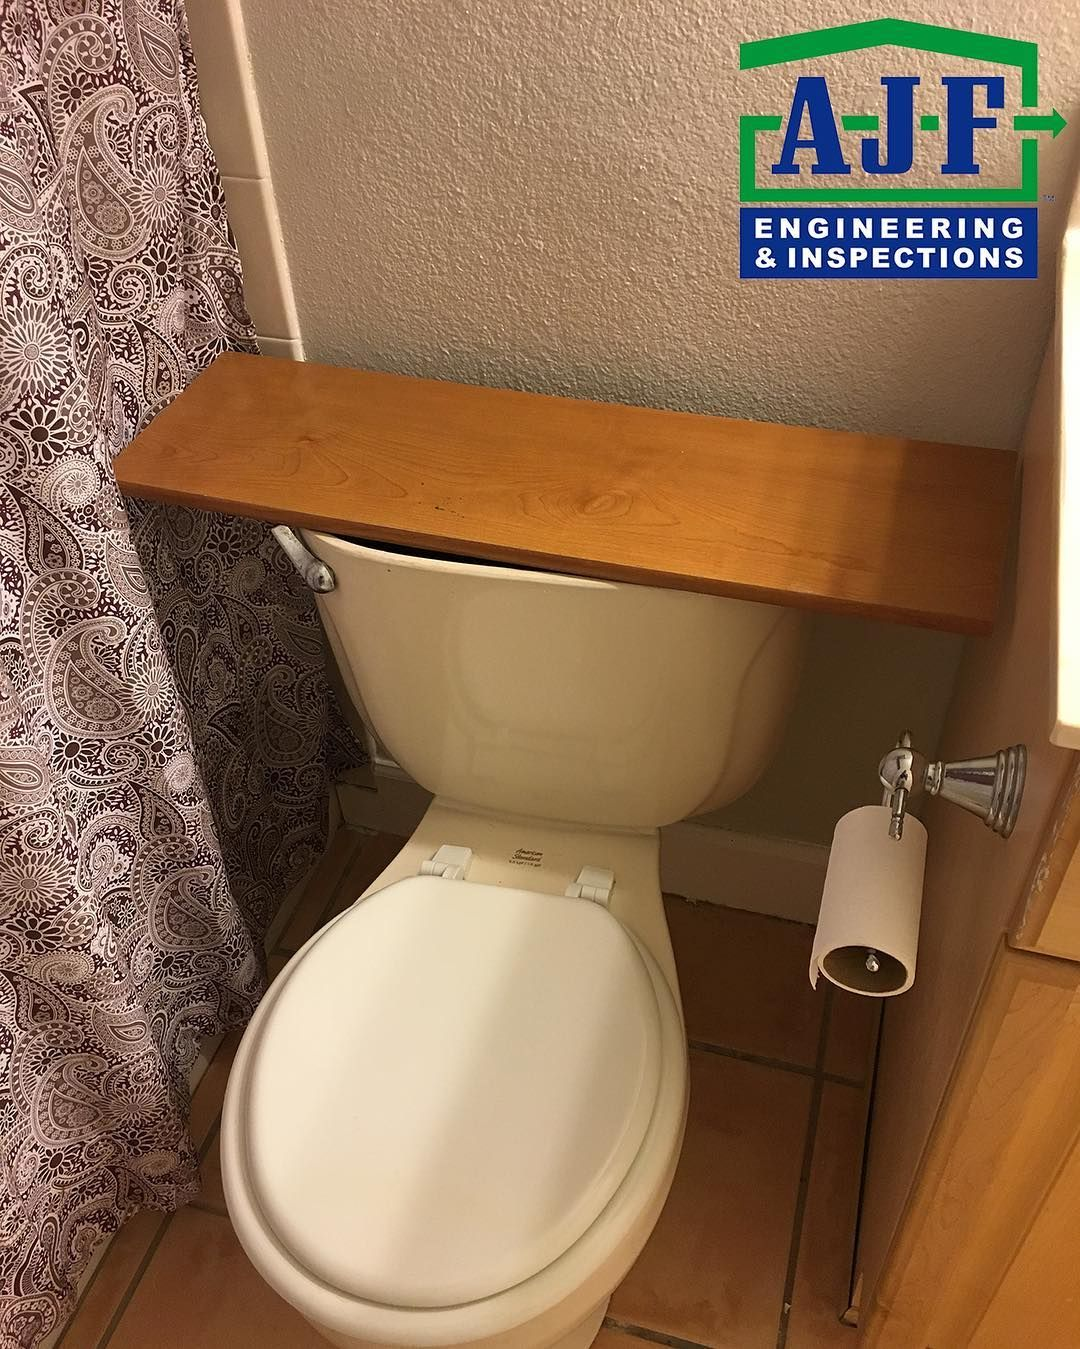 Have You Ever Lost Your Toilet Tank Lid Just Put A Board Over It And Call It A Custom Shelf Yourinspectionconnection W Toilet Tank Toilet Tank Lids Toilet